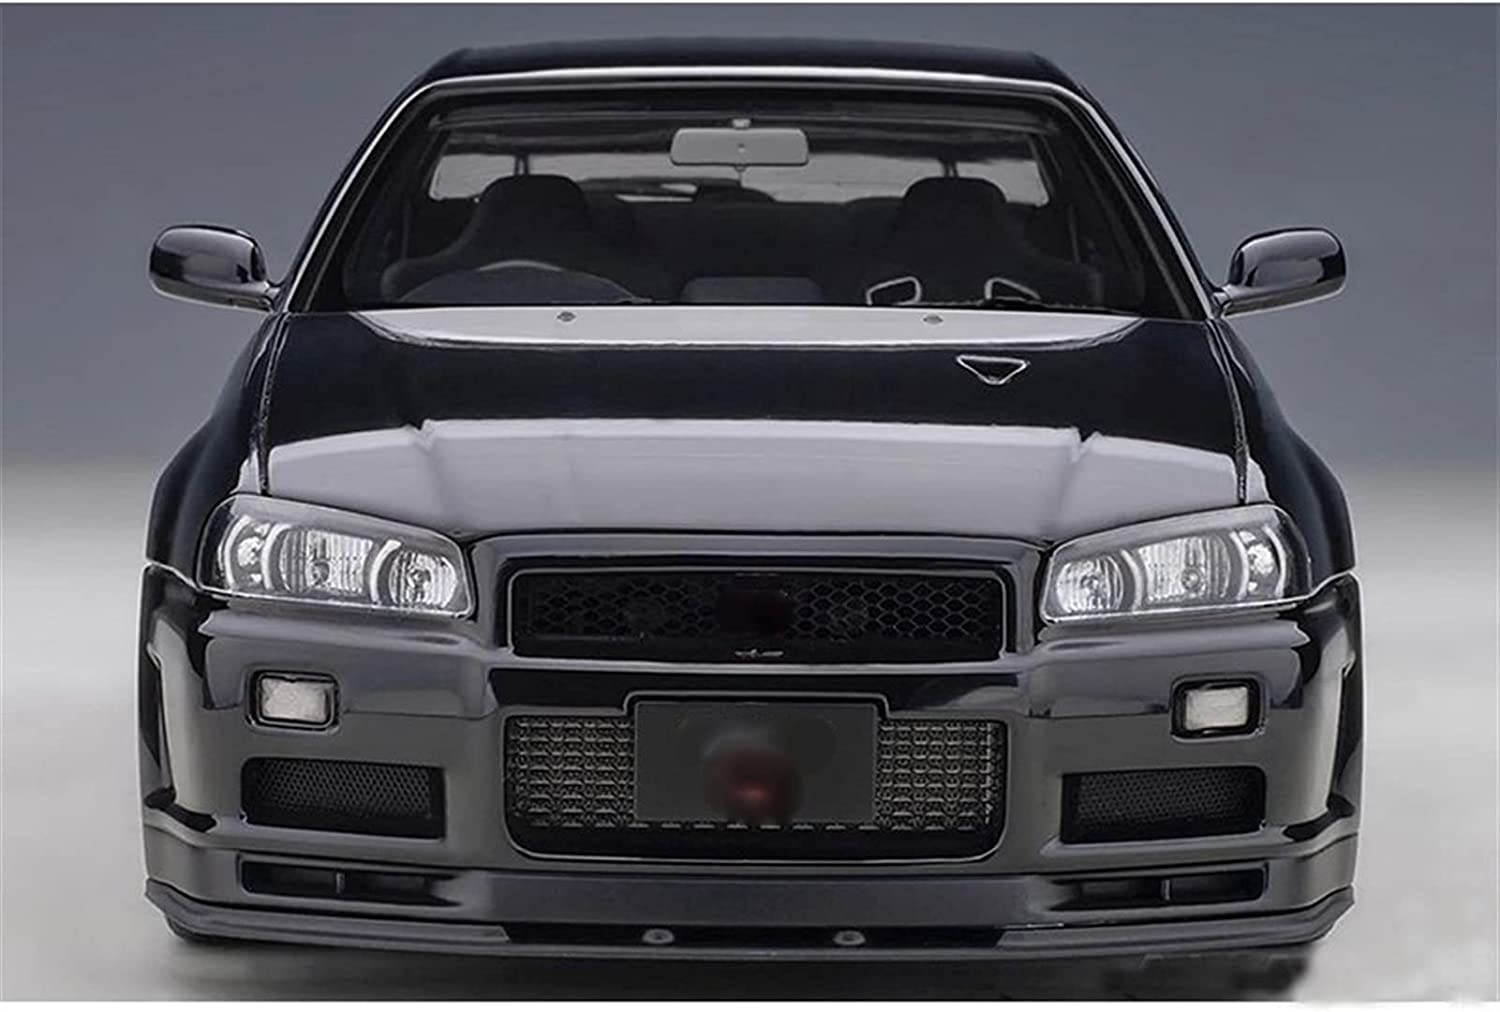 car Toy 1:32 for N-issan Skyline Ares Veh Dedication Diecasts Challenge the lowest price of Japan GTR R34